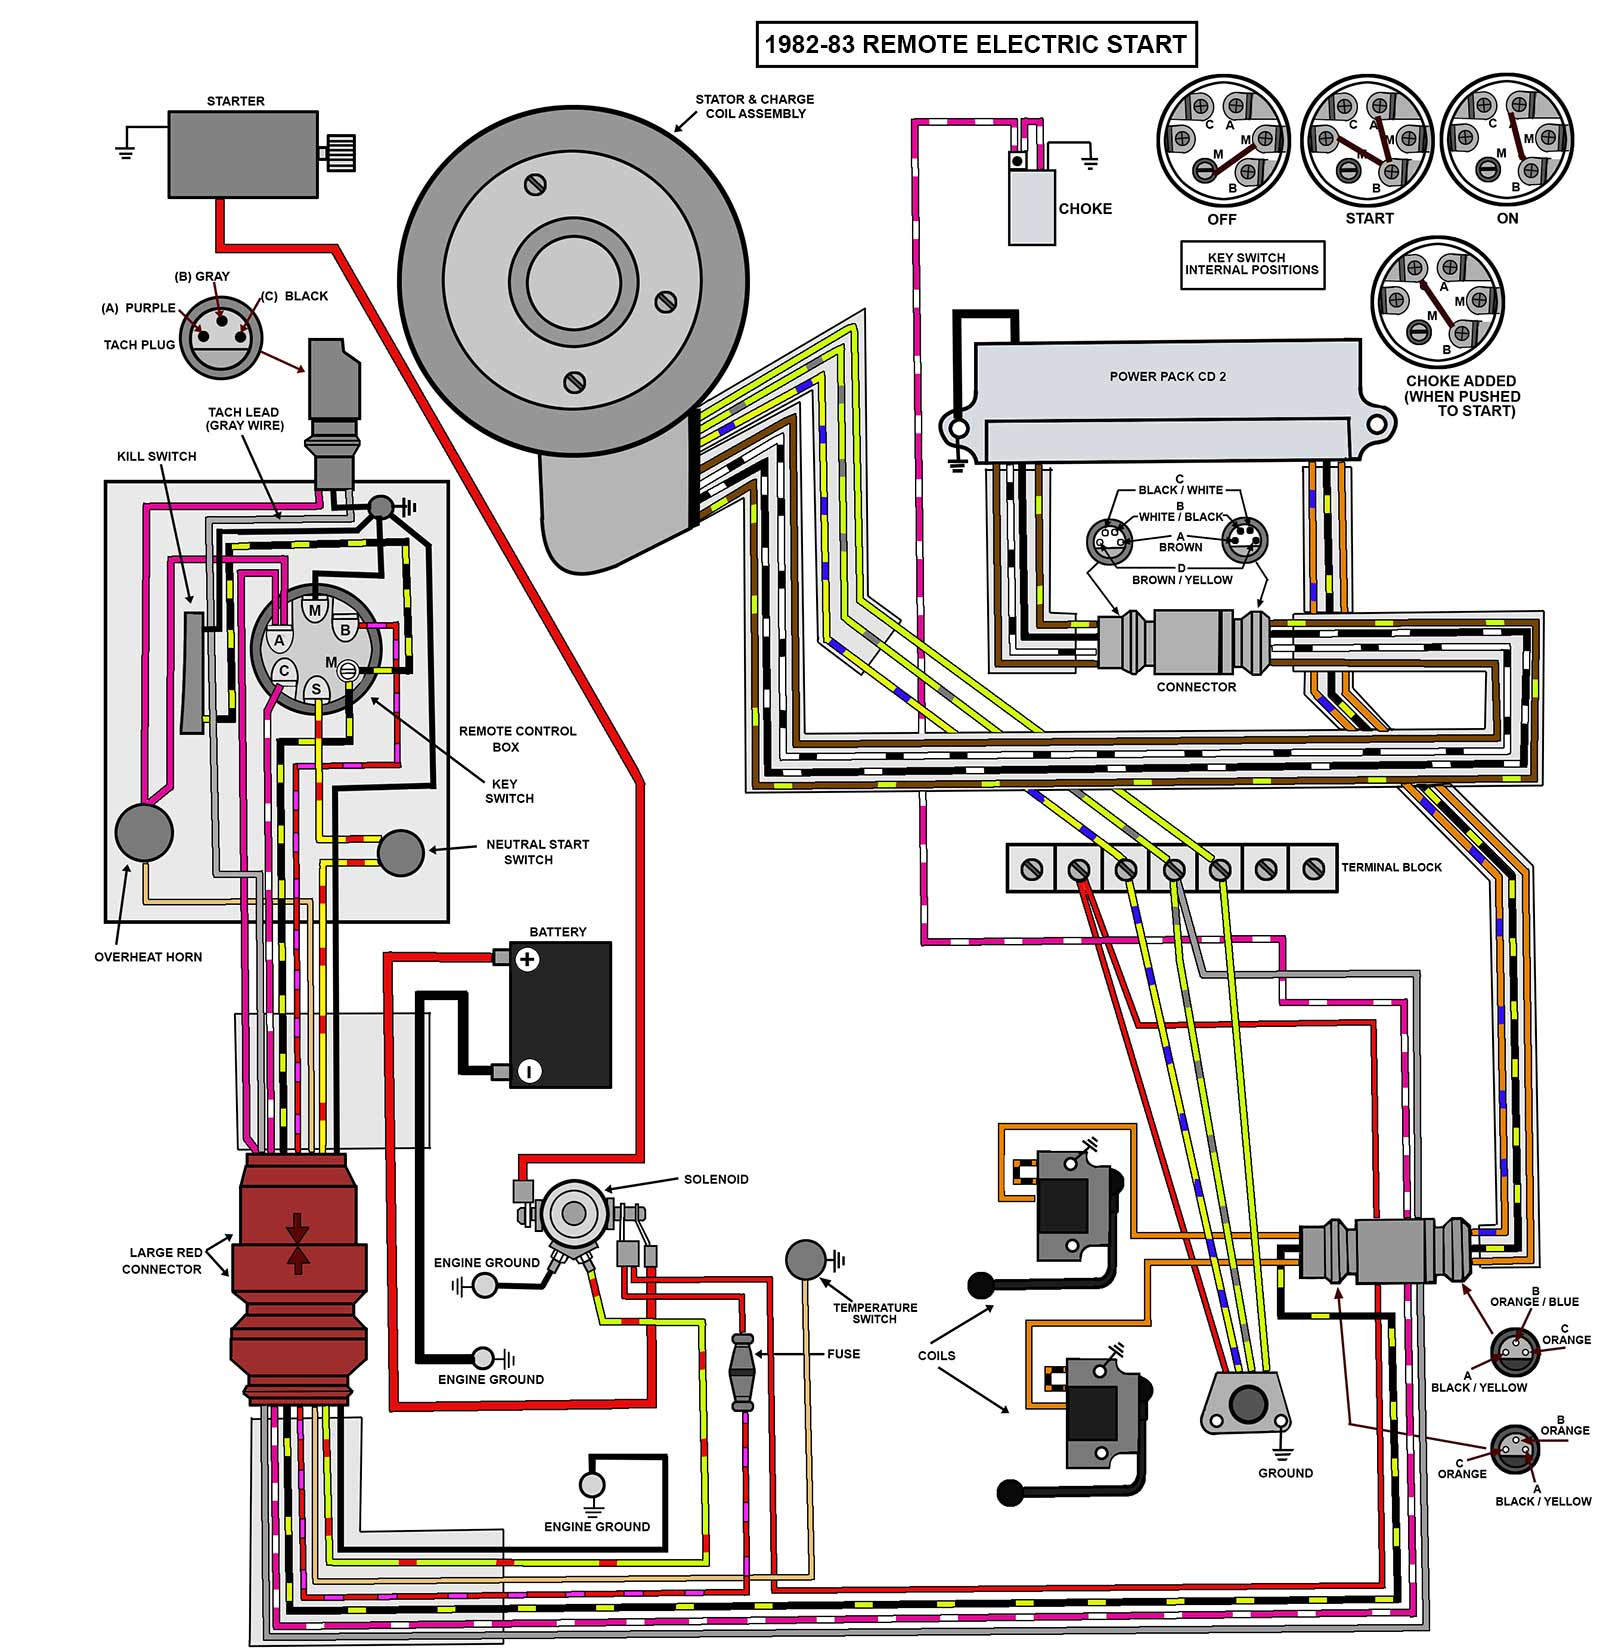 25_35_82 83_elec remote johnson wiring harness diagram on johnson download wirning diagrams johnson wiring harness diagram at n-0.co